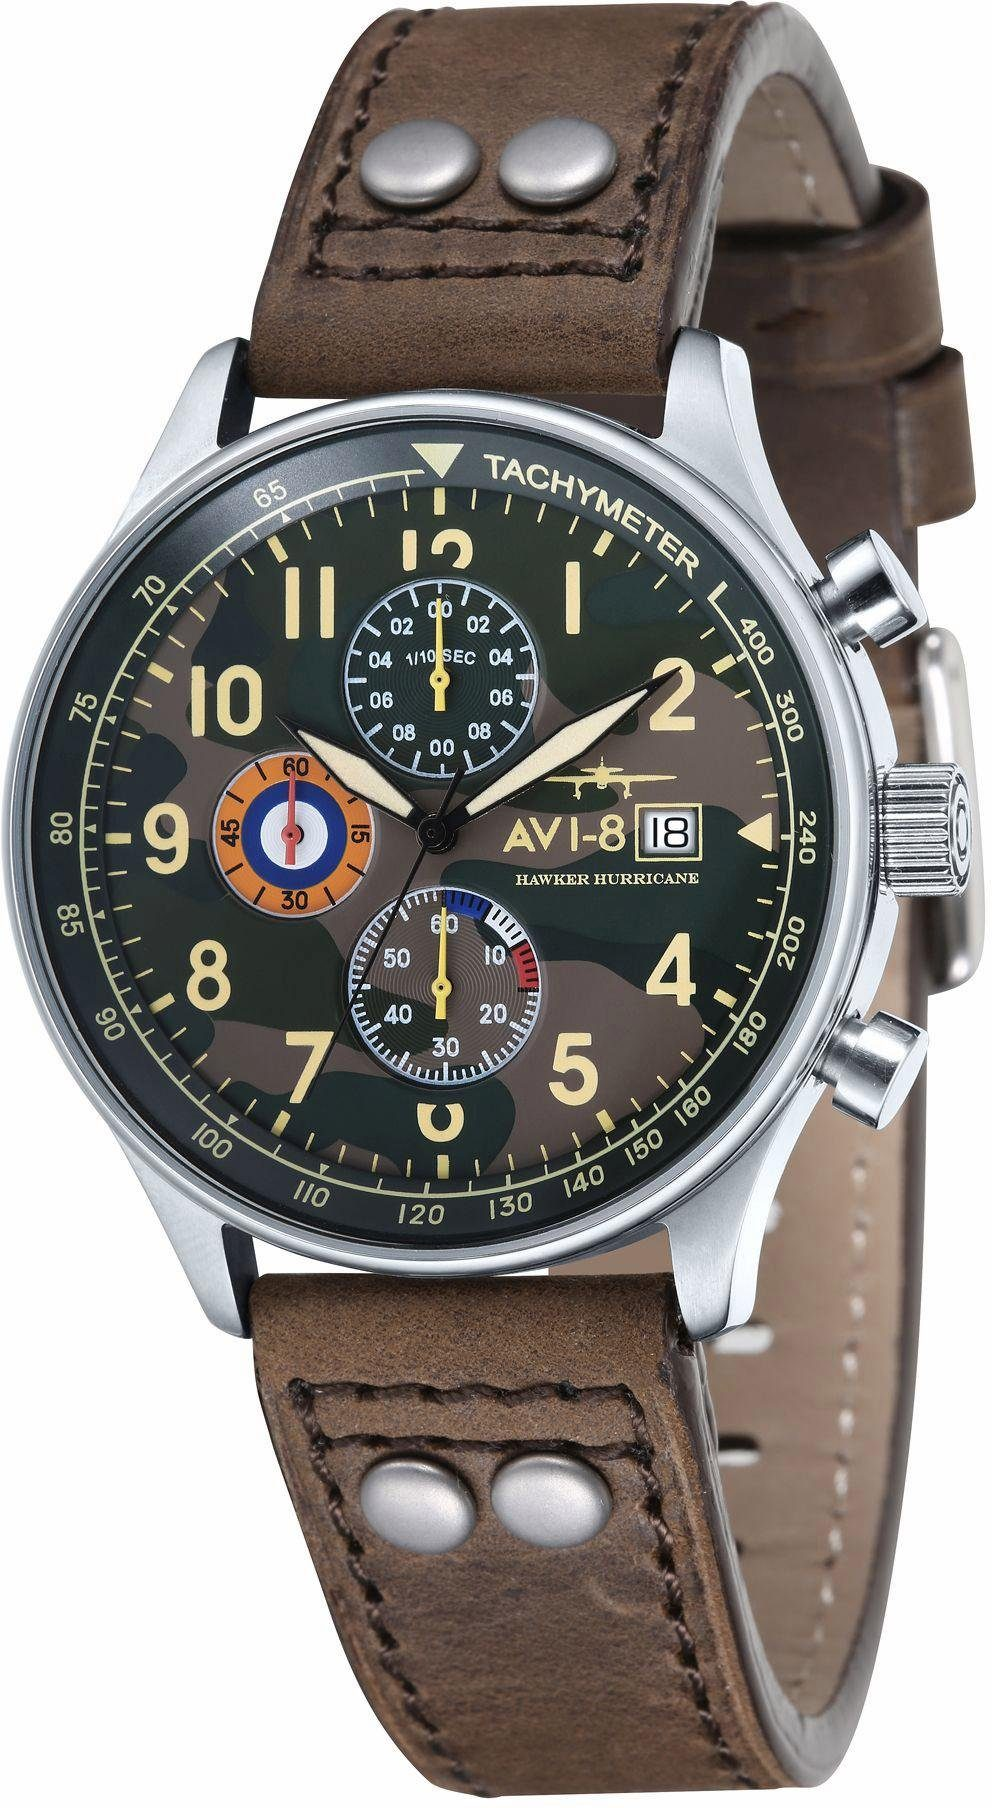 AVI-8 Chronograph »Hawker Hurricane, AV-4011-09«